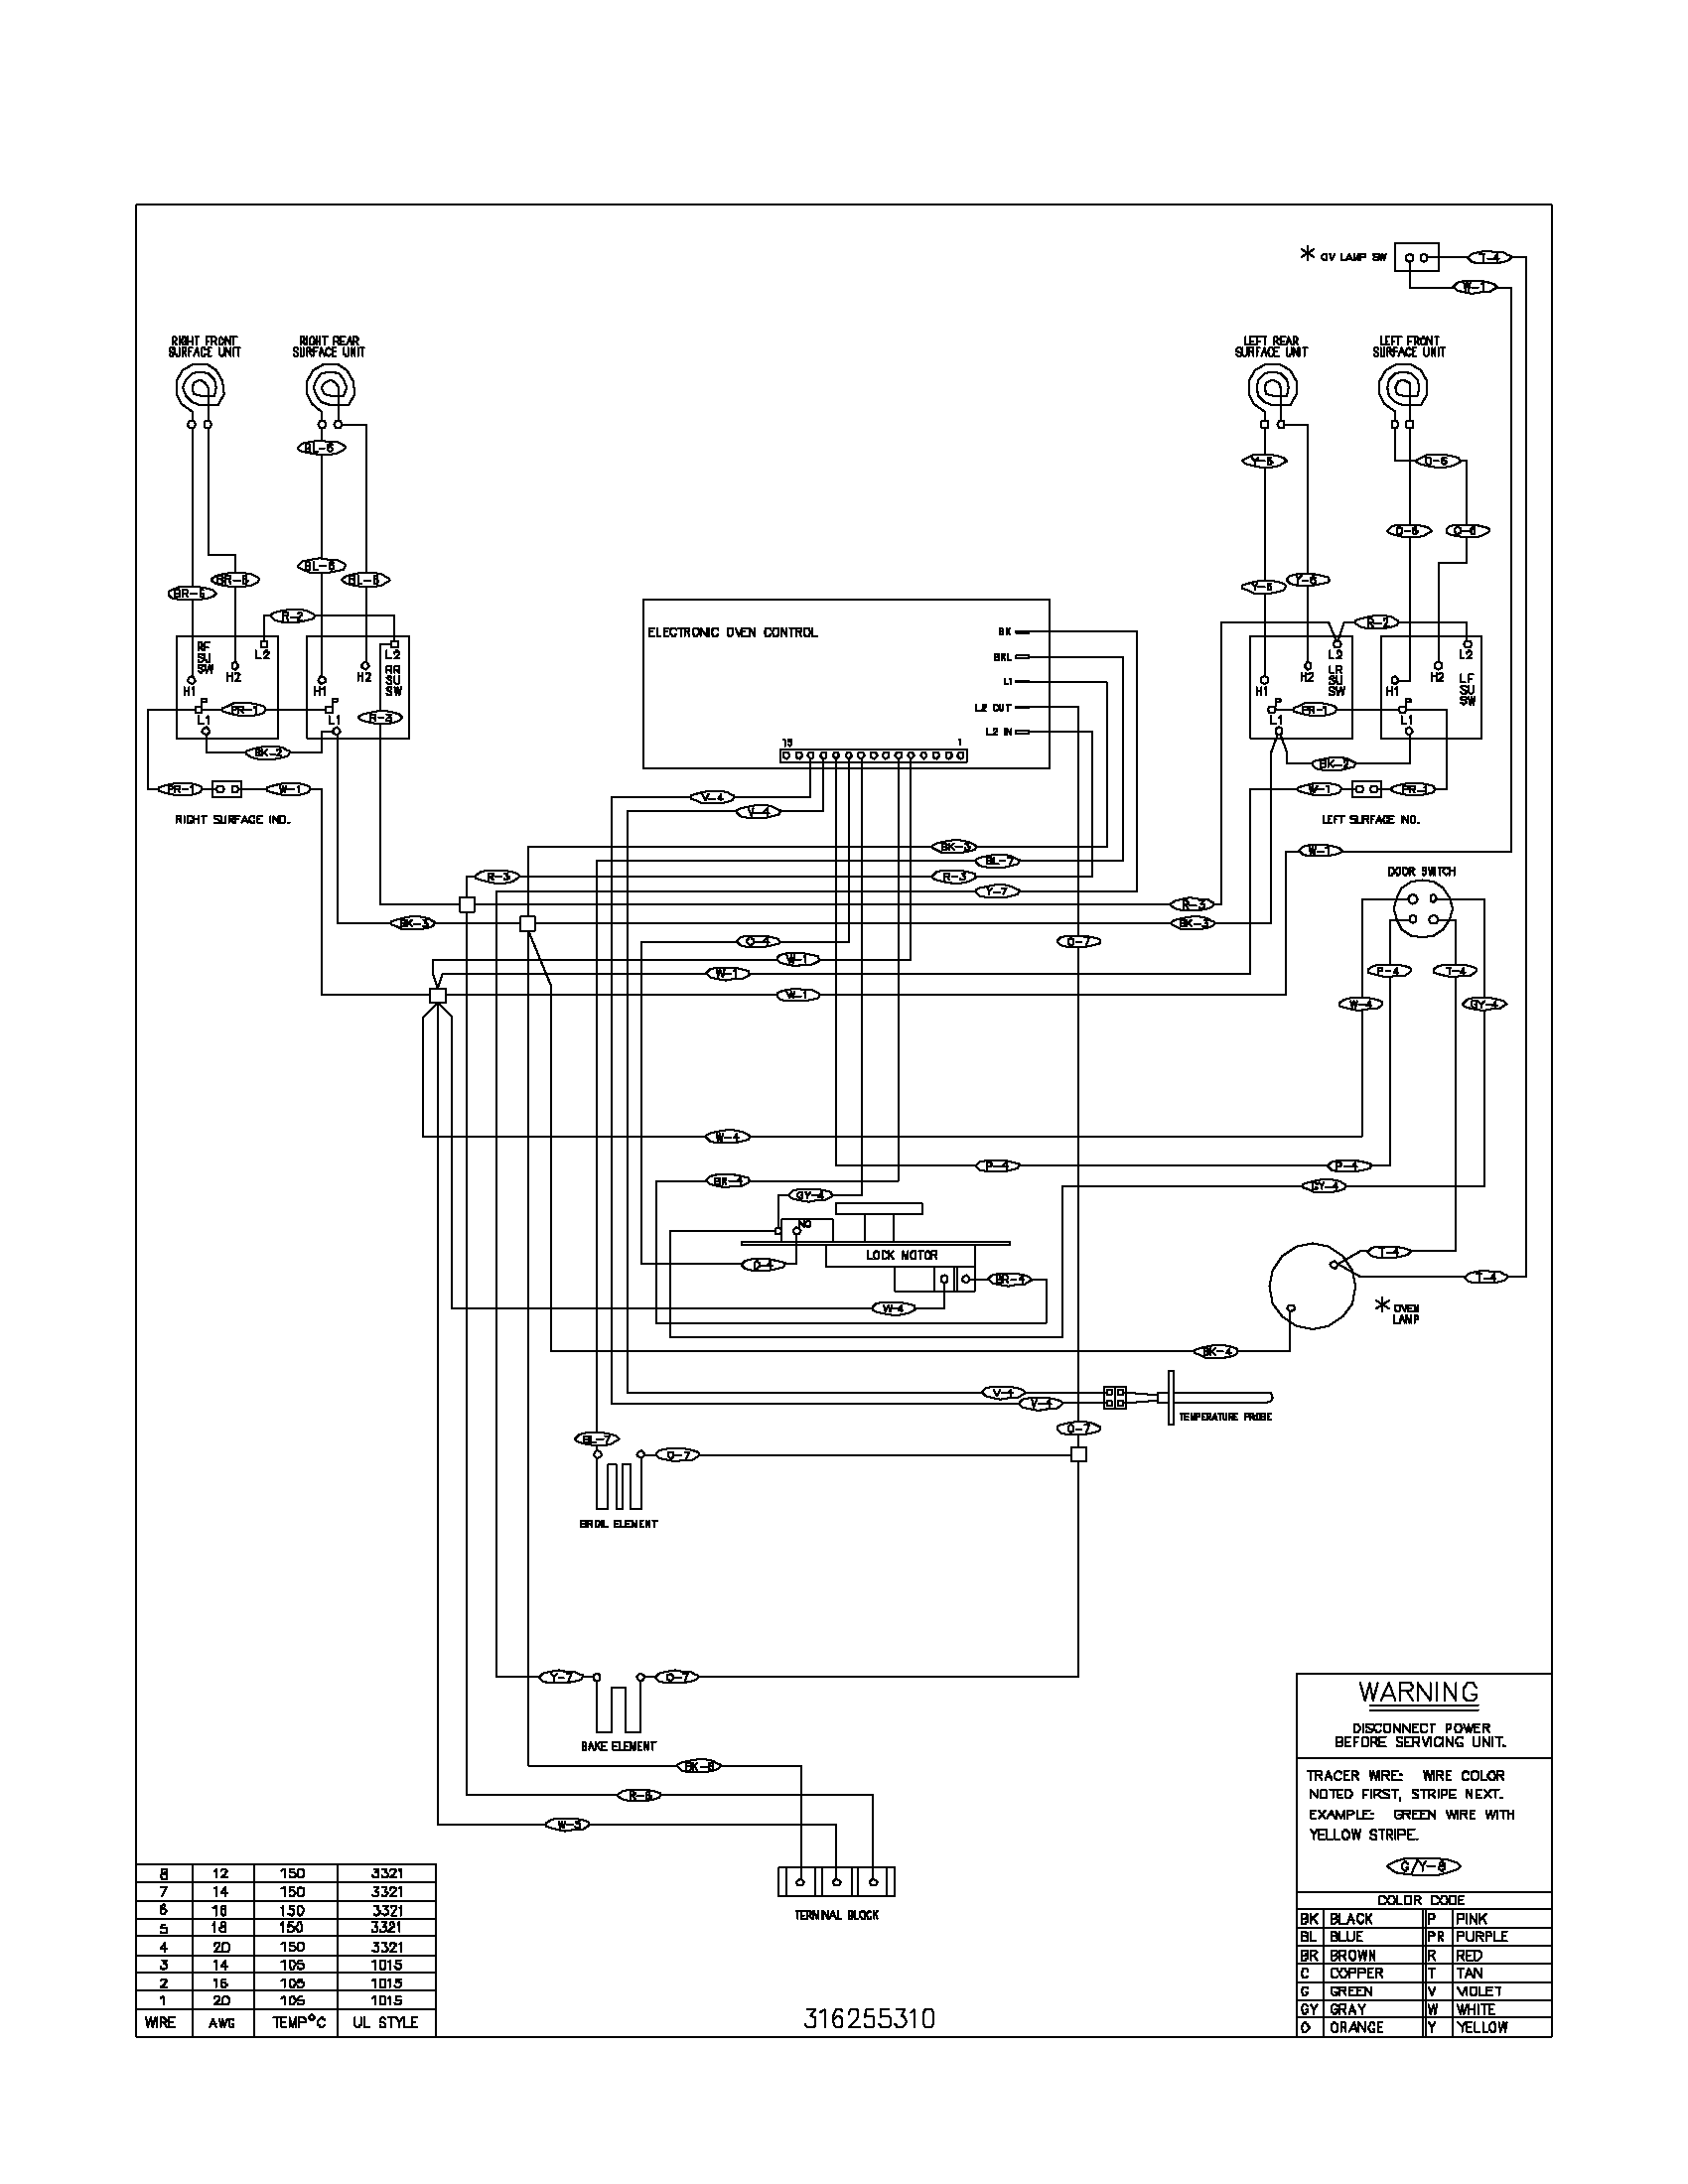 wiring diagram parts frigidaire fef352asf electric range timer stove clocks and wiring diagram for frigidaire refrigerator at fashall.co